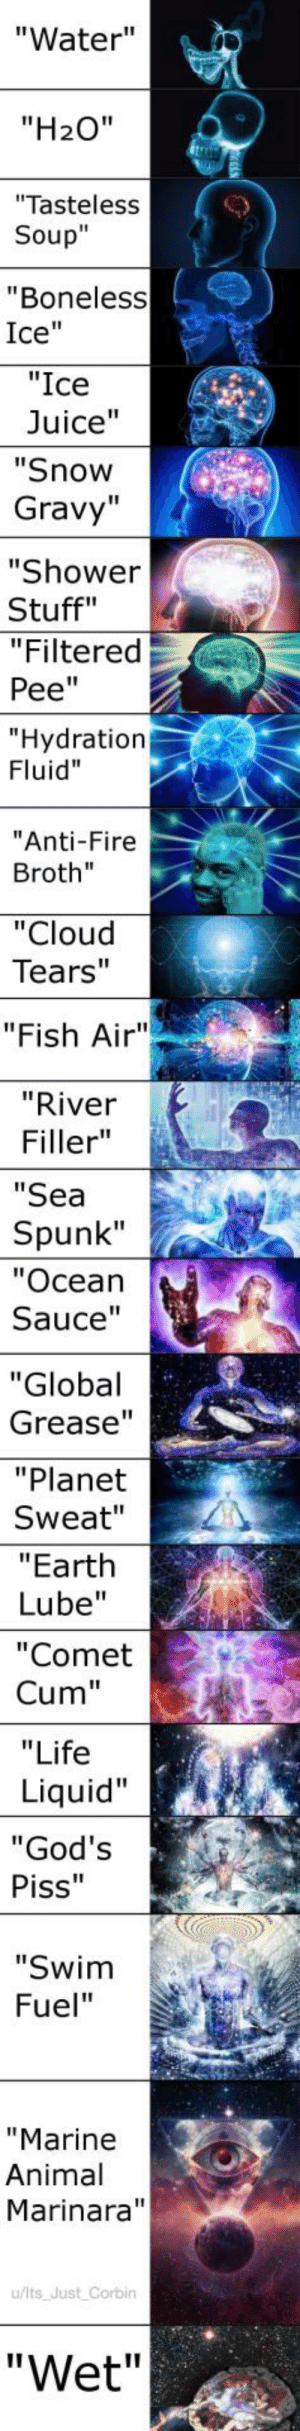 "OC Maymay ♨6 million years of evolution have led to this memes creation. become 𝓮 𝓷 𝓵 𝓲 𝓰 𝓱 𝓽 𝓮 𝓷 𝓮 𝓭. (i.redd.it): ""Water""  ""H20""  ""Tasteless  Soup""  ""Boneless  Ice""  ""Ice  Juice""  ""Snow  Gravy""  ""Shower  Stuff""  ""Filtered  Pee""  Hydration  Fluid""  Anti-Fire  Broth""  ""Cloud  Tears""  ""Fish Air""  ""River  Filler""  ""Sea  Spunk""  ""Ocean  Sauce  ""Global  Grease'""  ""Planet  Sweat""  ""Earth  Lube""  ""Comet  Cum""  ""Life  Liquid""  God's  Piss""  ""Swim  Fuel""  ""Marine  Animal  Marinara""  u/lts Just Corbin  ""Wet"" OC Maymay ♨6 million years of evolution have led to this memes creation. become 𝓮 𝓷 𝓵 𝓲 𝓰 𝓱 𝓽 𝓮 𝓷 𝓮 𝓭. (i.redd.it)"